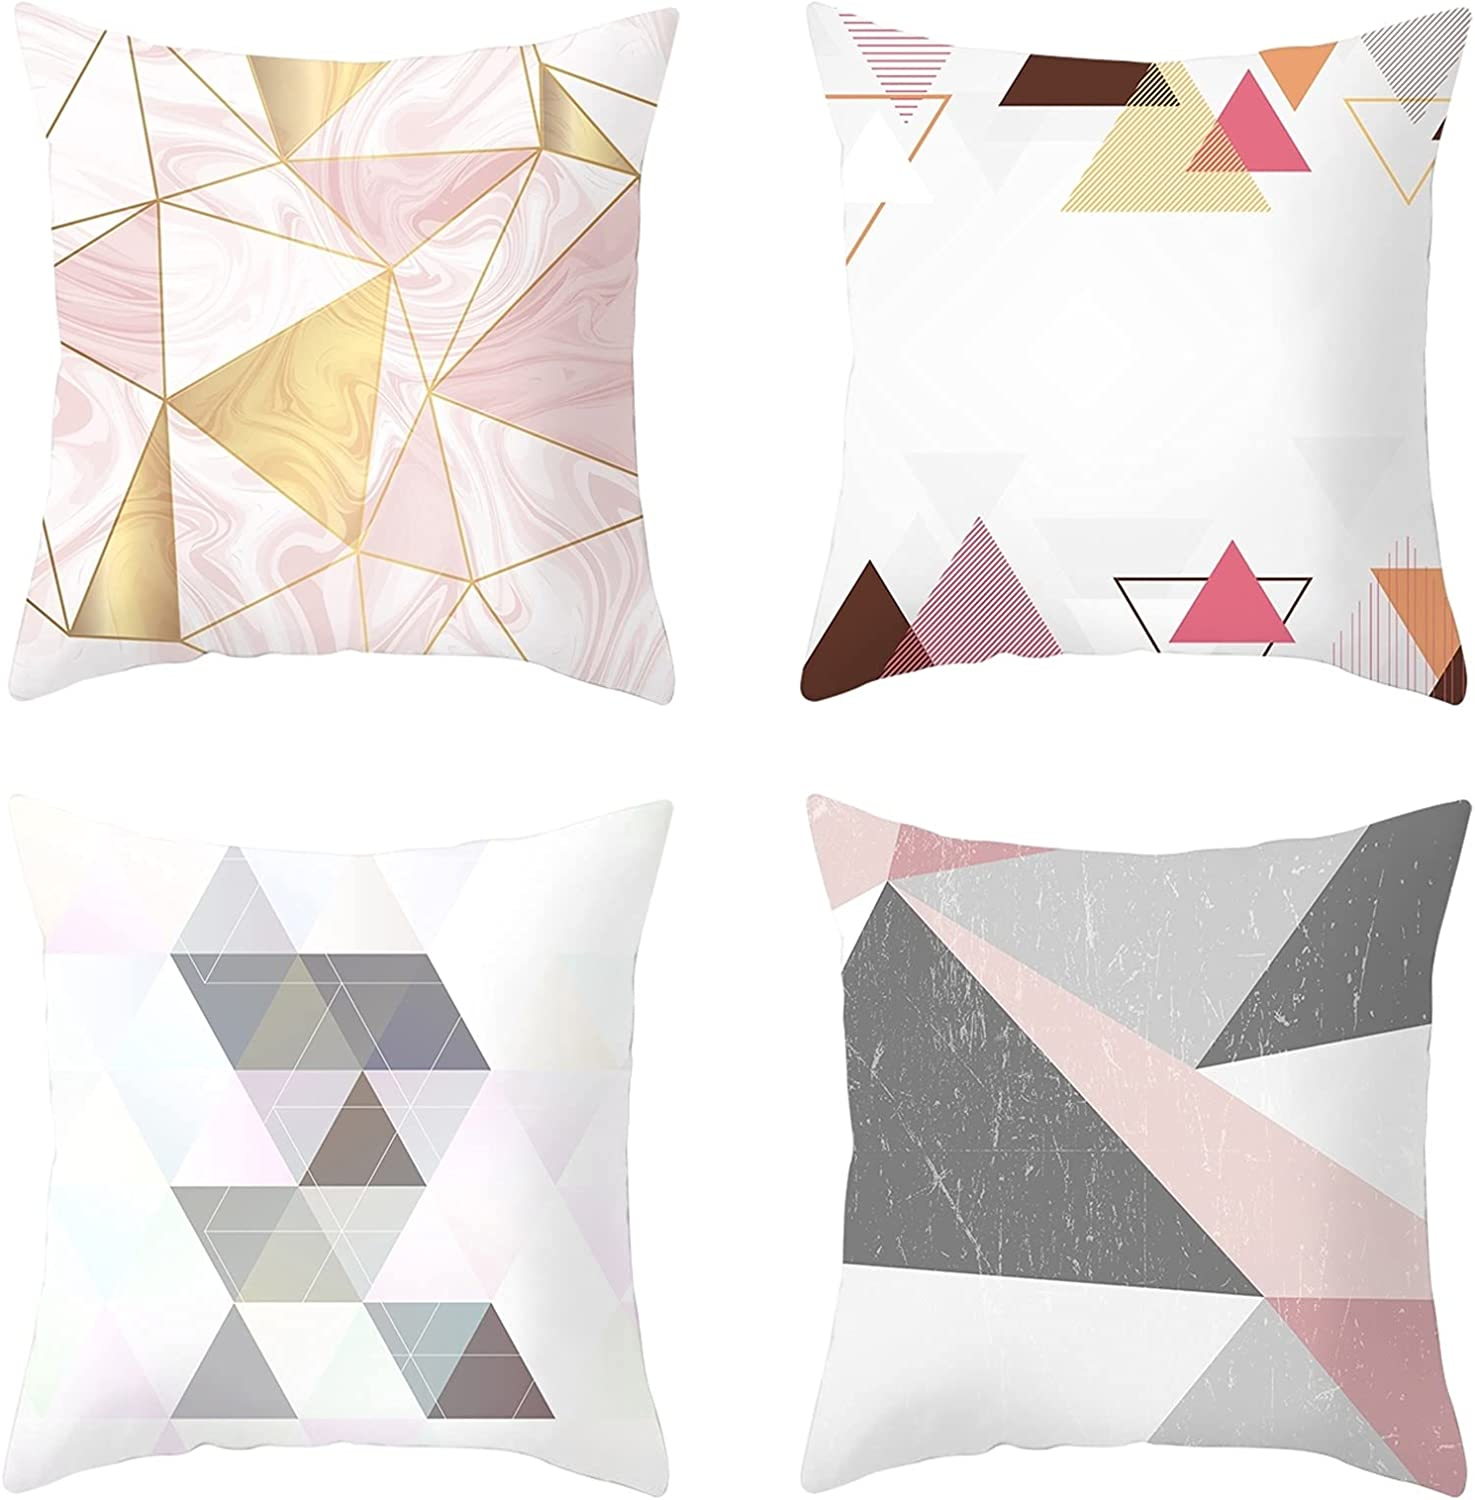 Daesar Throw Pillow Covers for Kids White Pin Pillowcase 4 Pack Large discharge sale Cheap mail order shopping